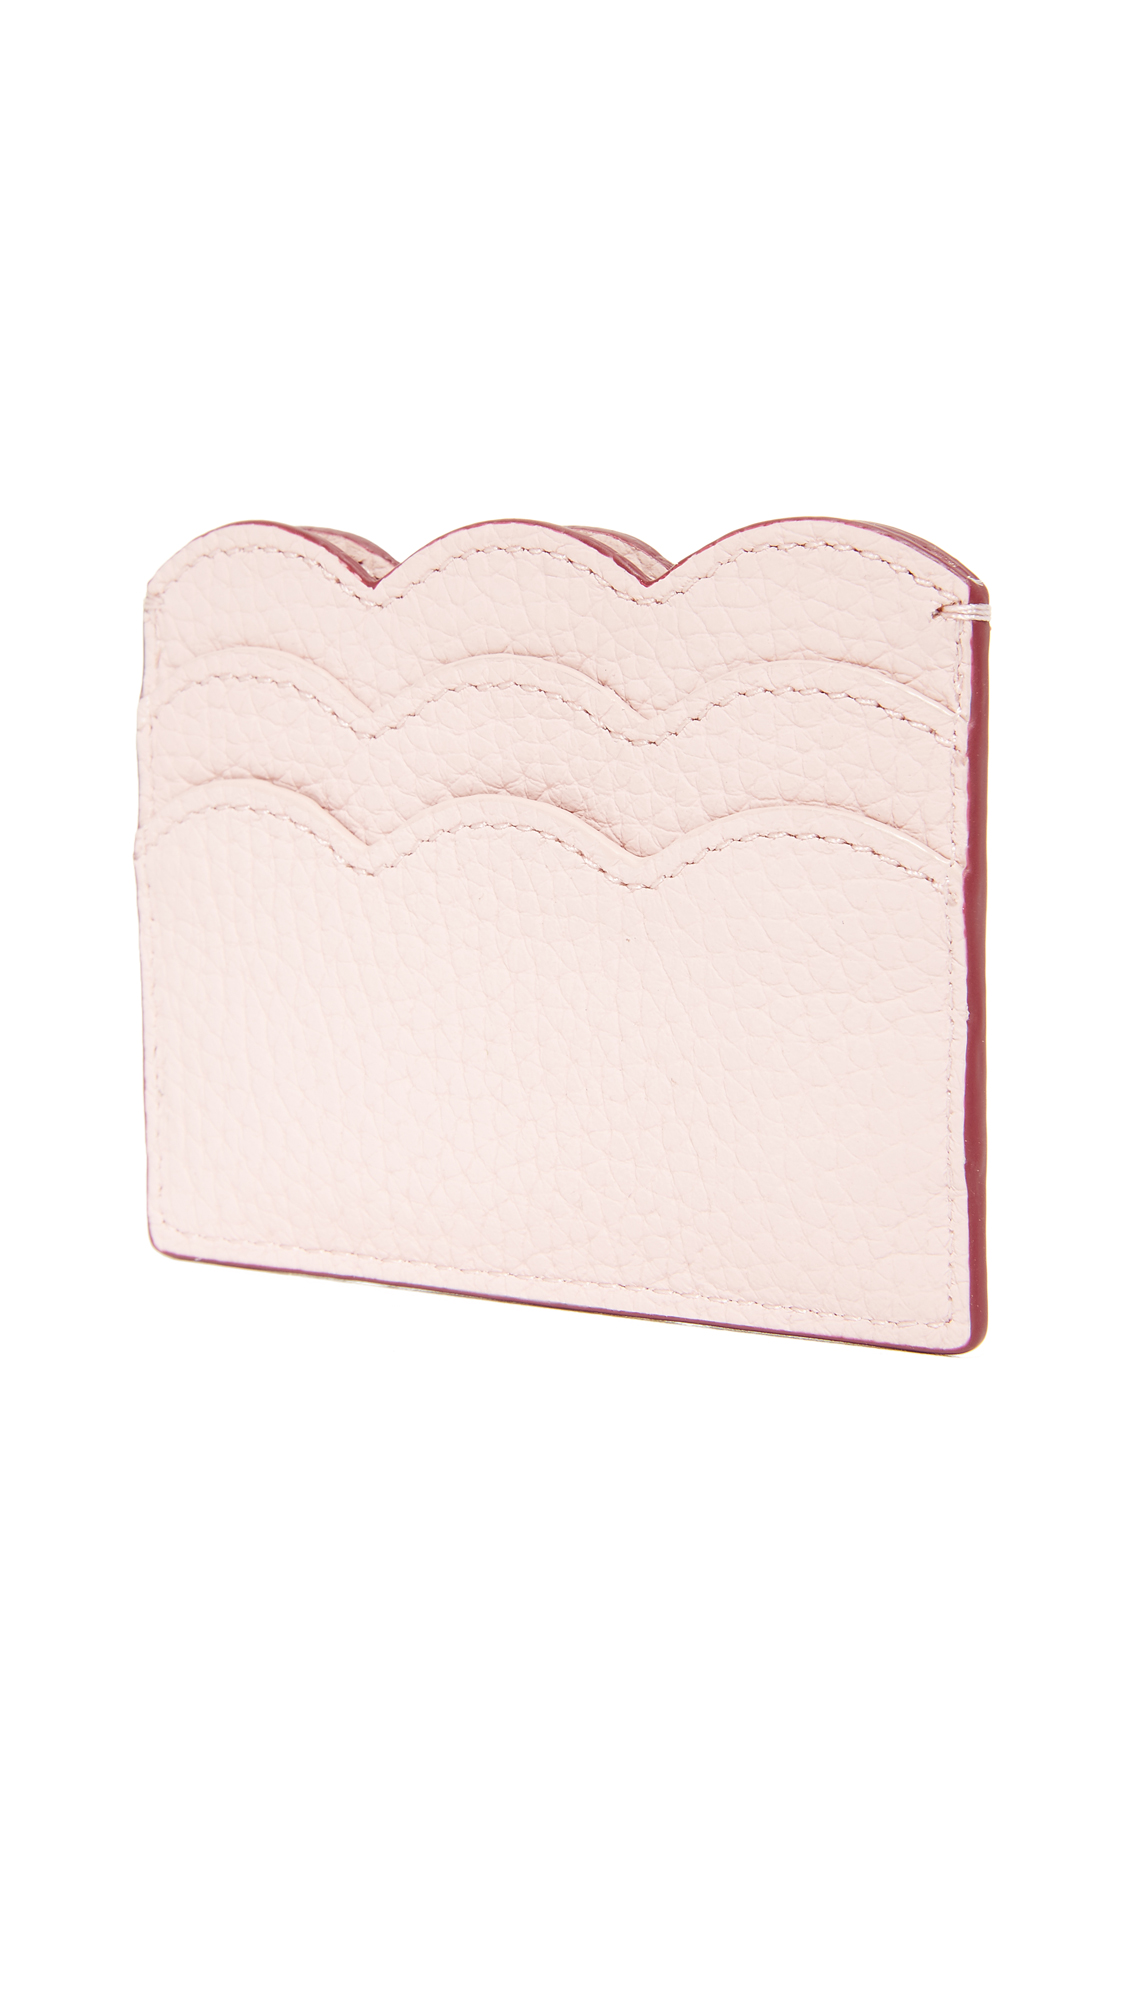 online store 21fac 9a7b9 Kate Spade New York Leewood Place Card Holder | SHOPBOP